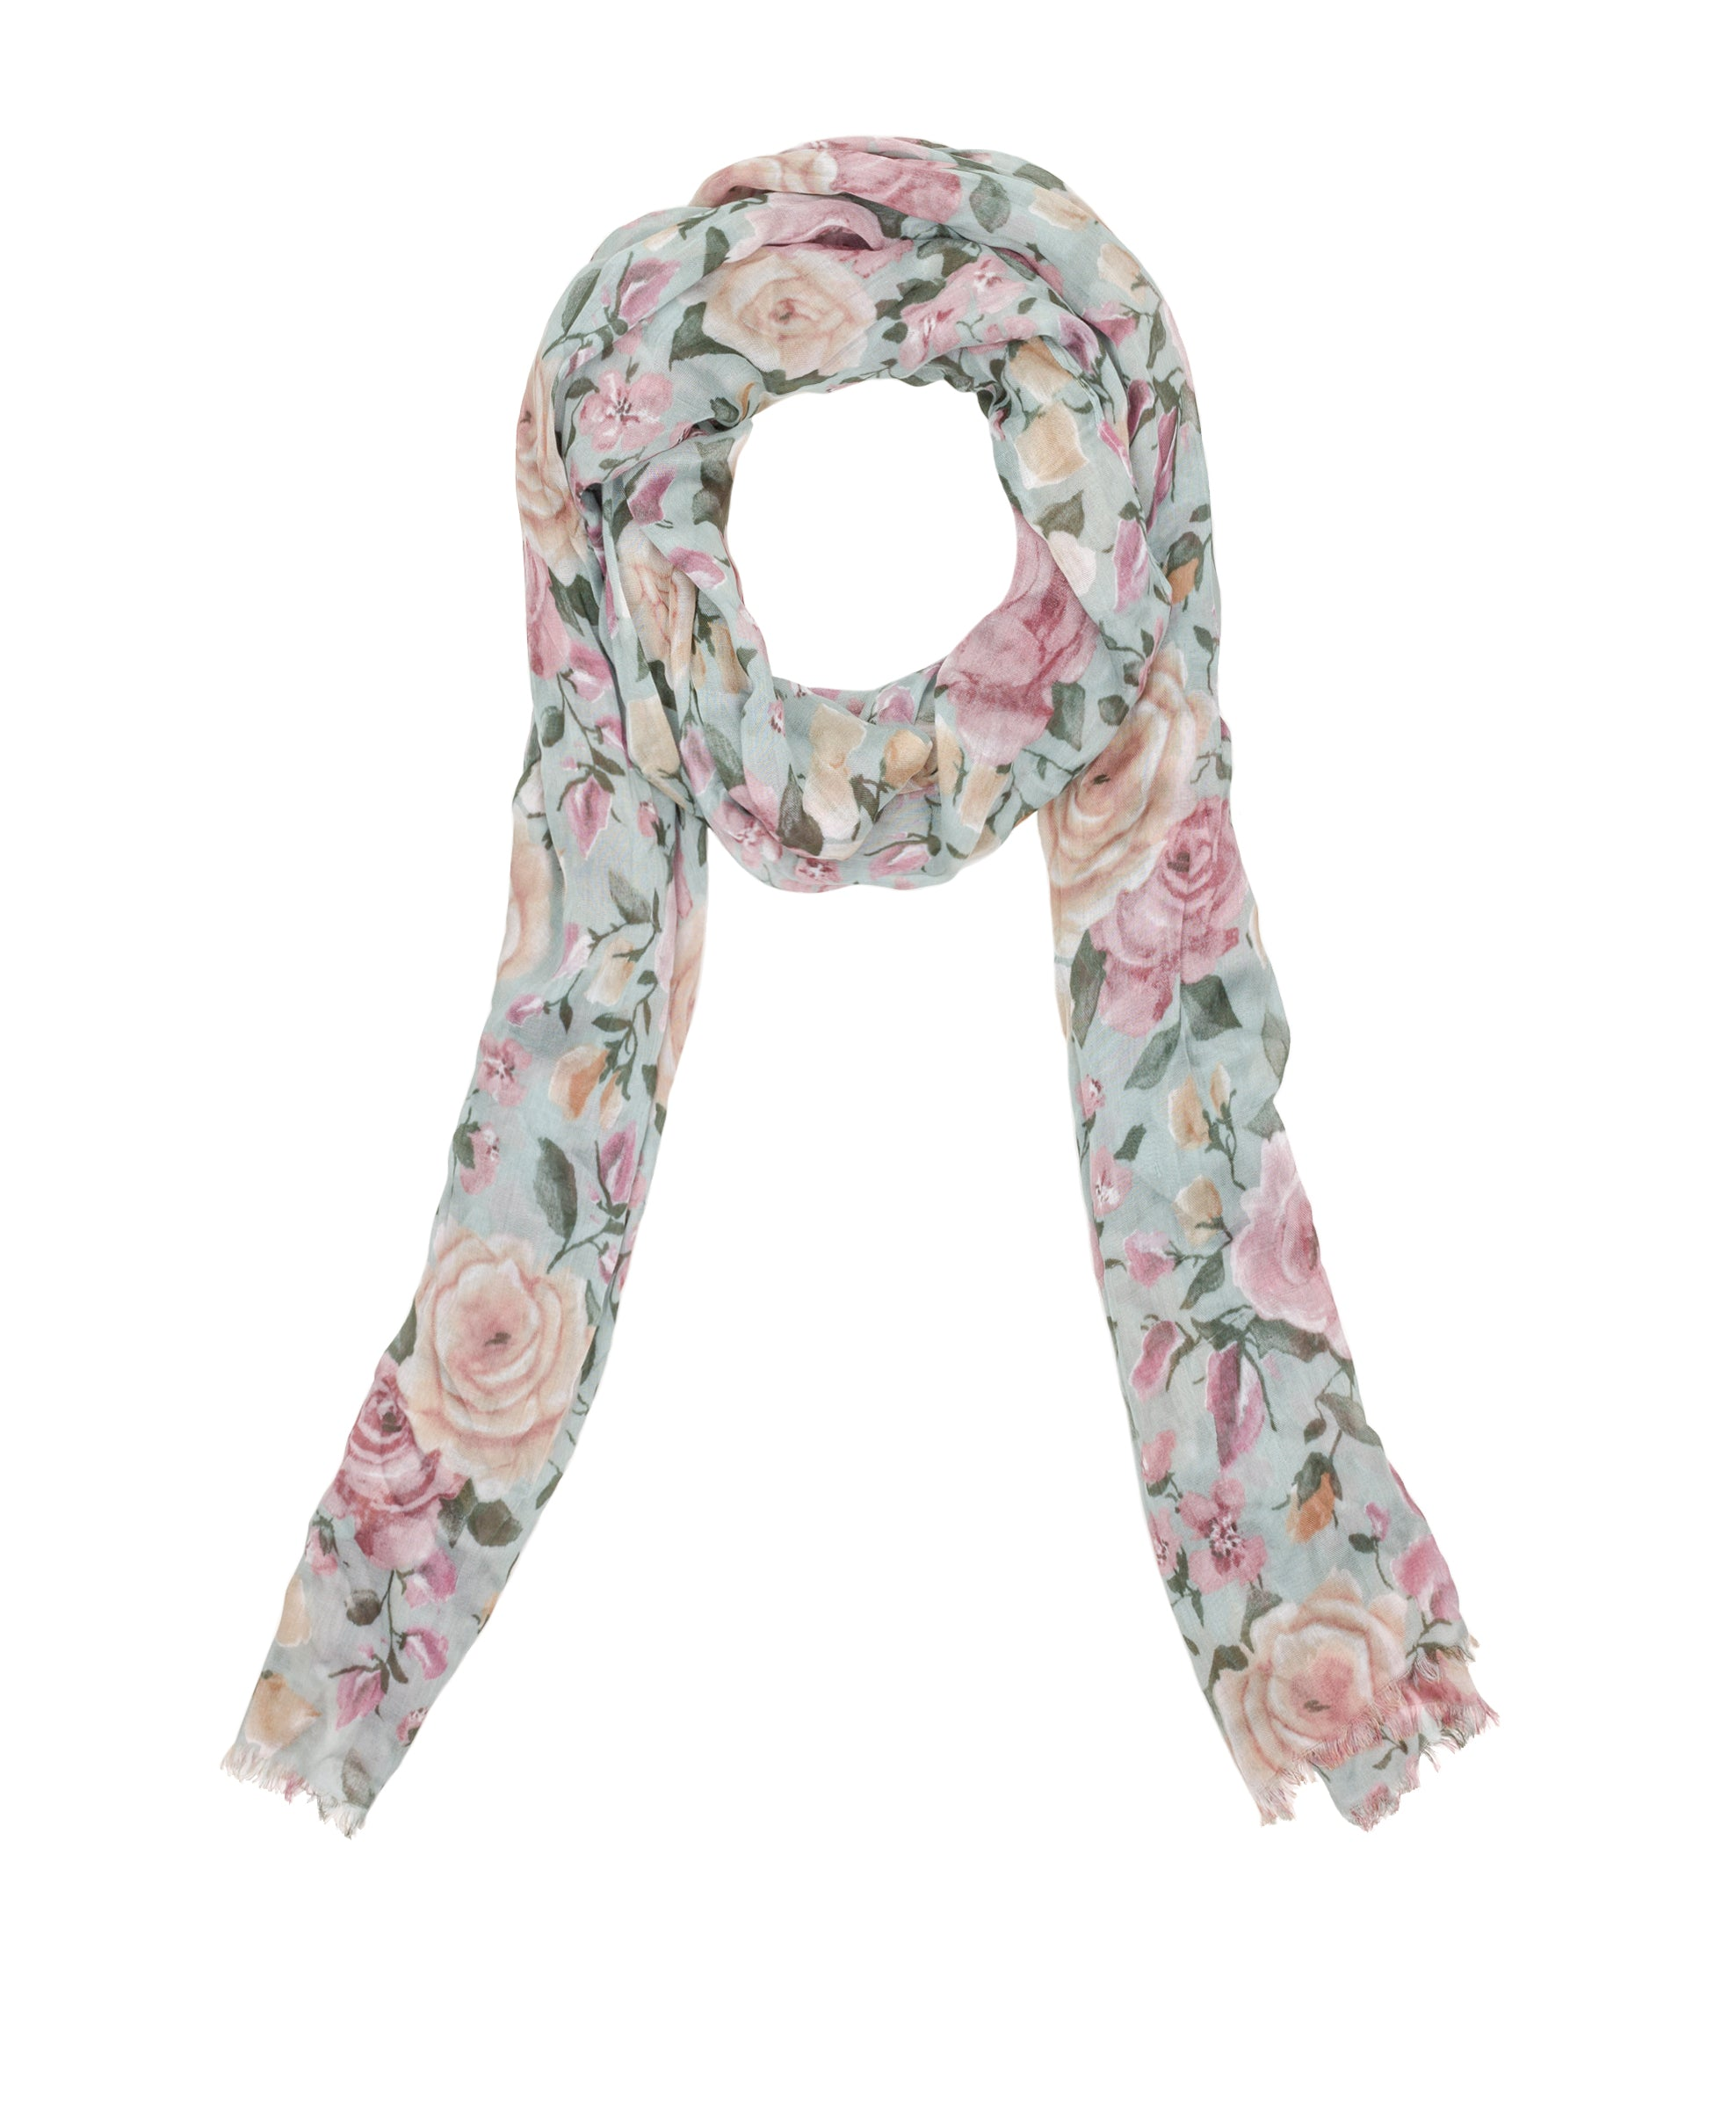 Scarf - Crackled Rose